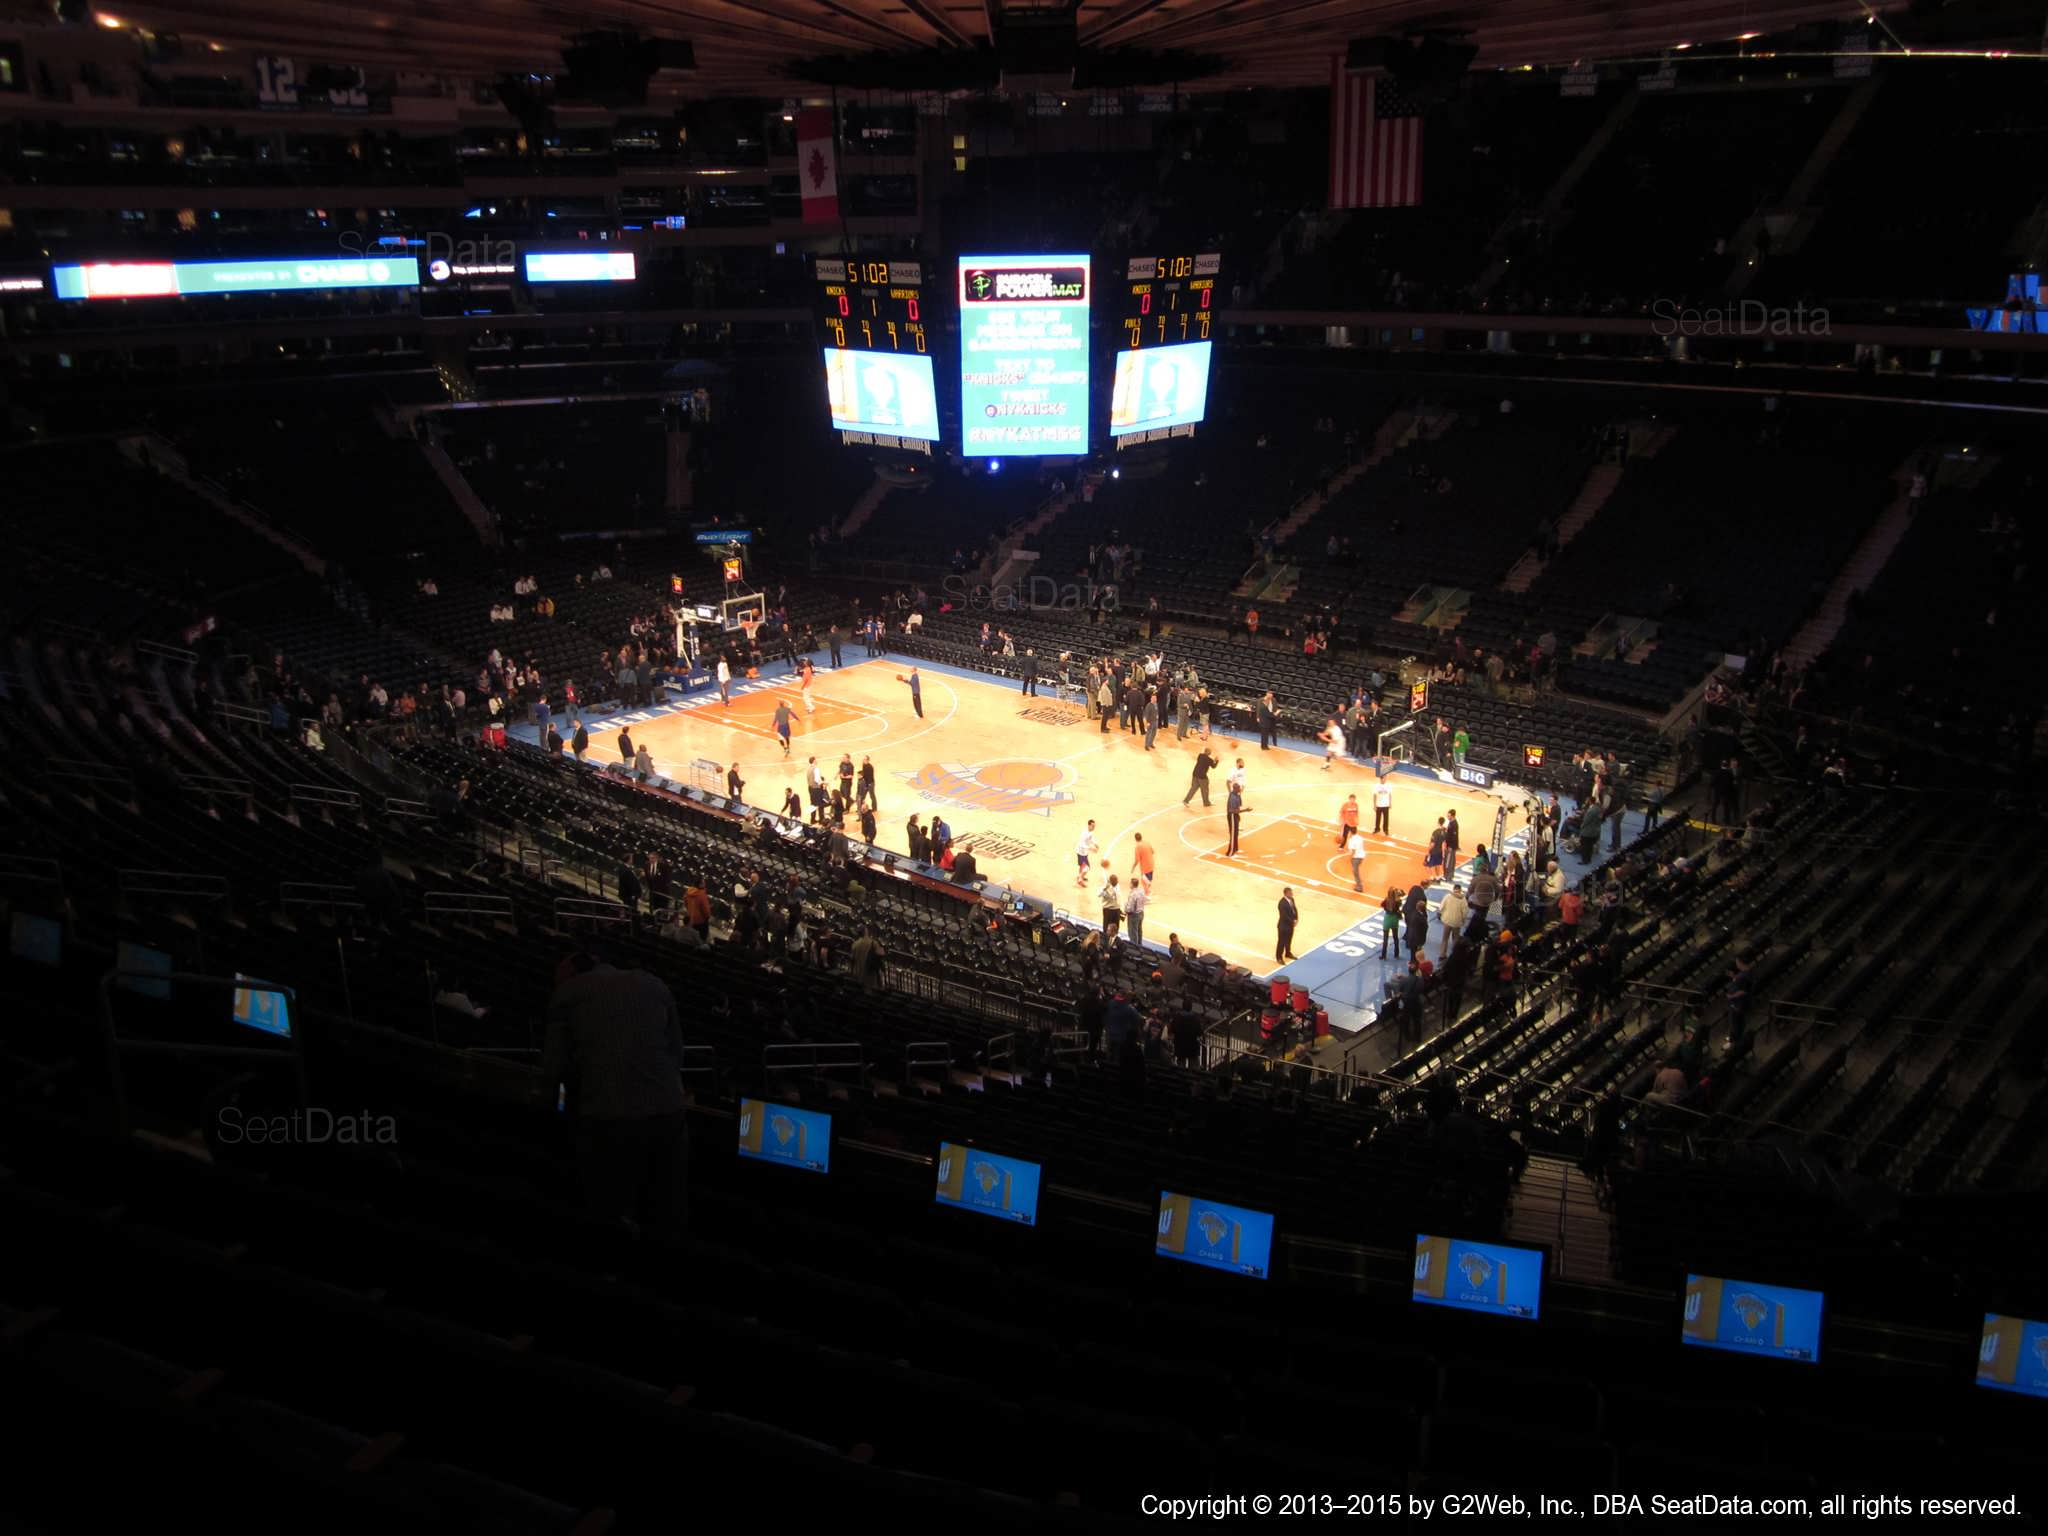 Seat view from section 214 at Madison Square Garden, home of the New York Knicks.